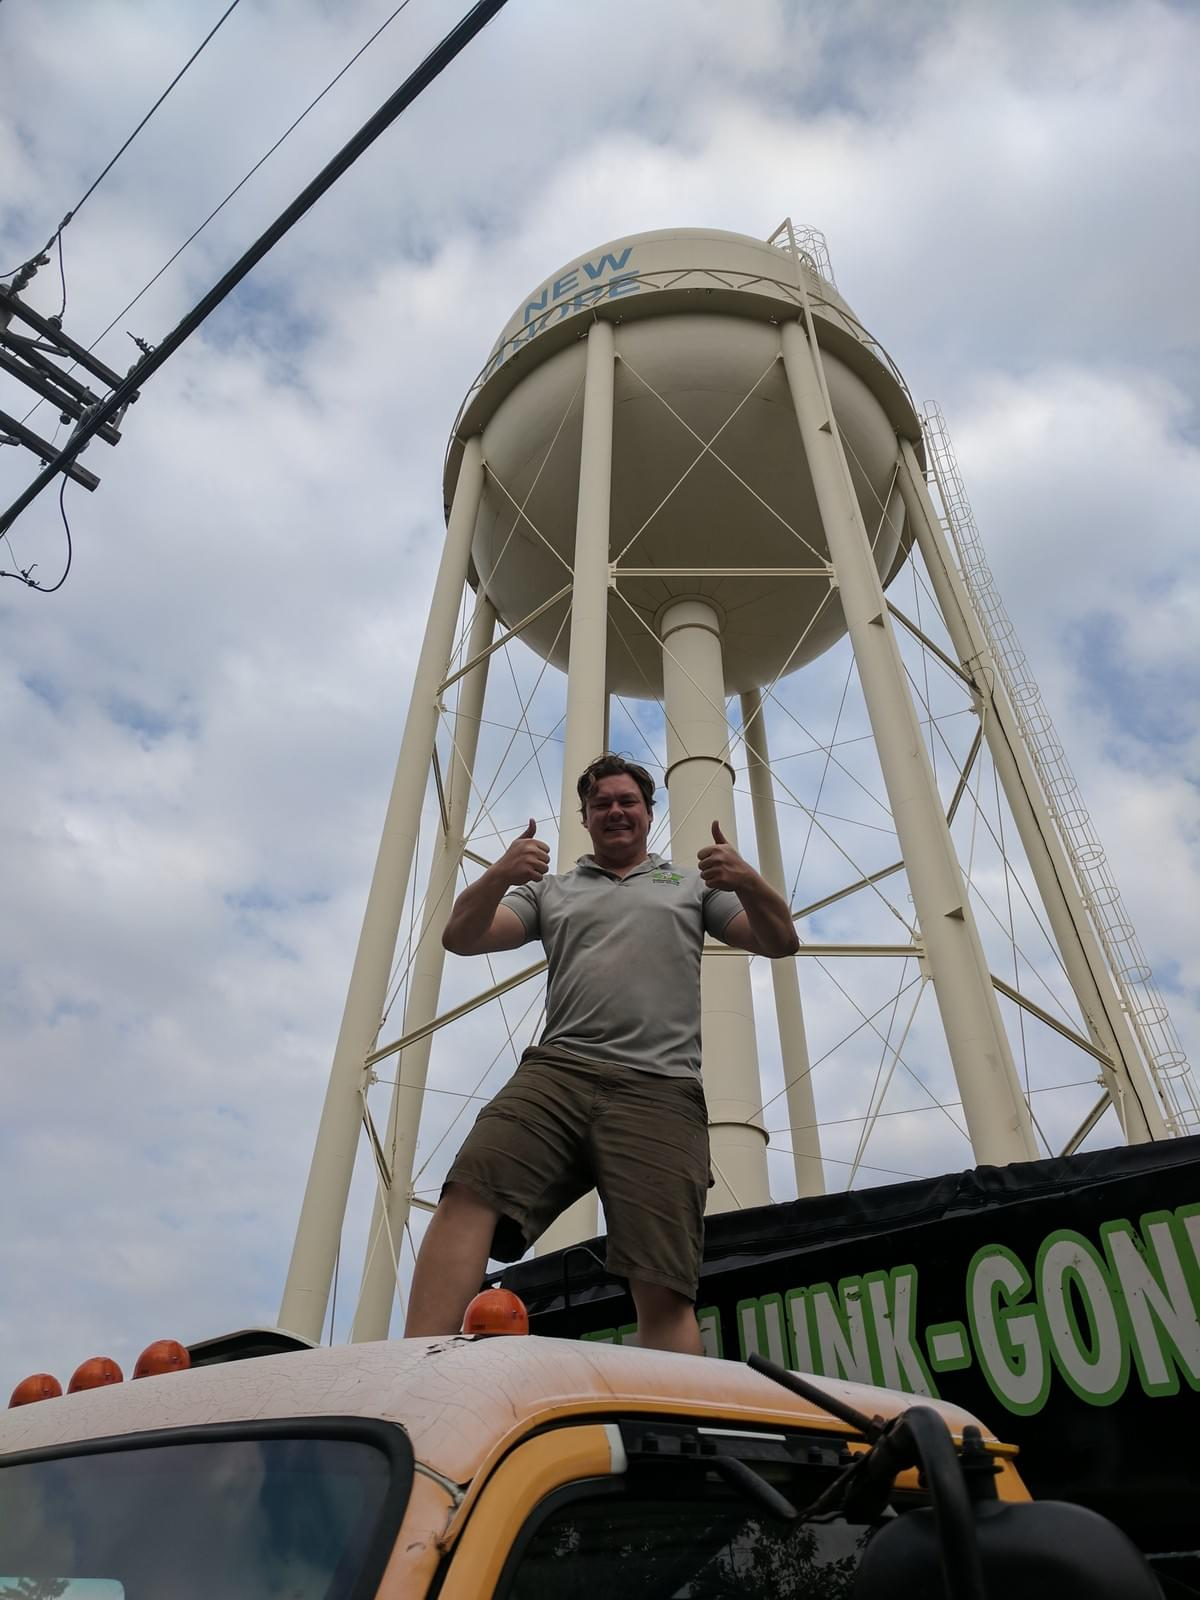 new hope water tower cleanup with junk guy